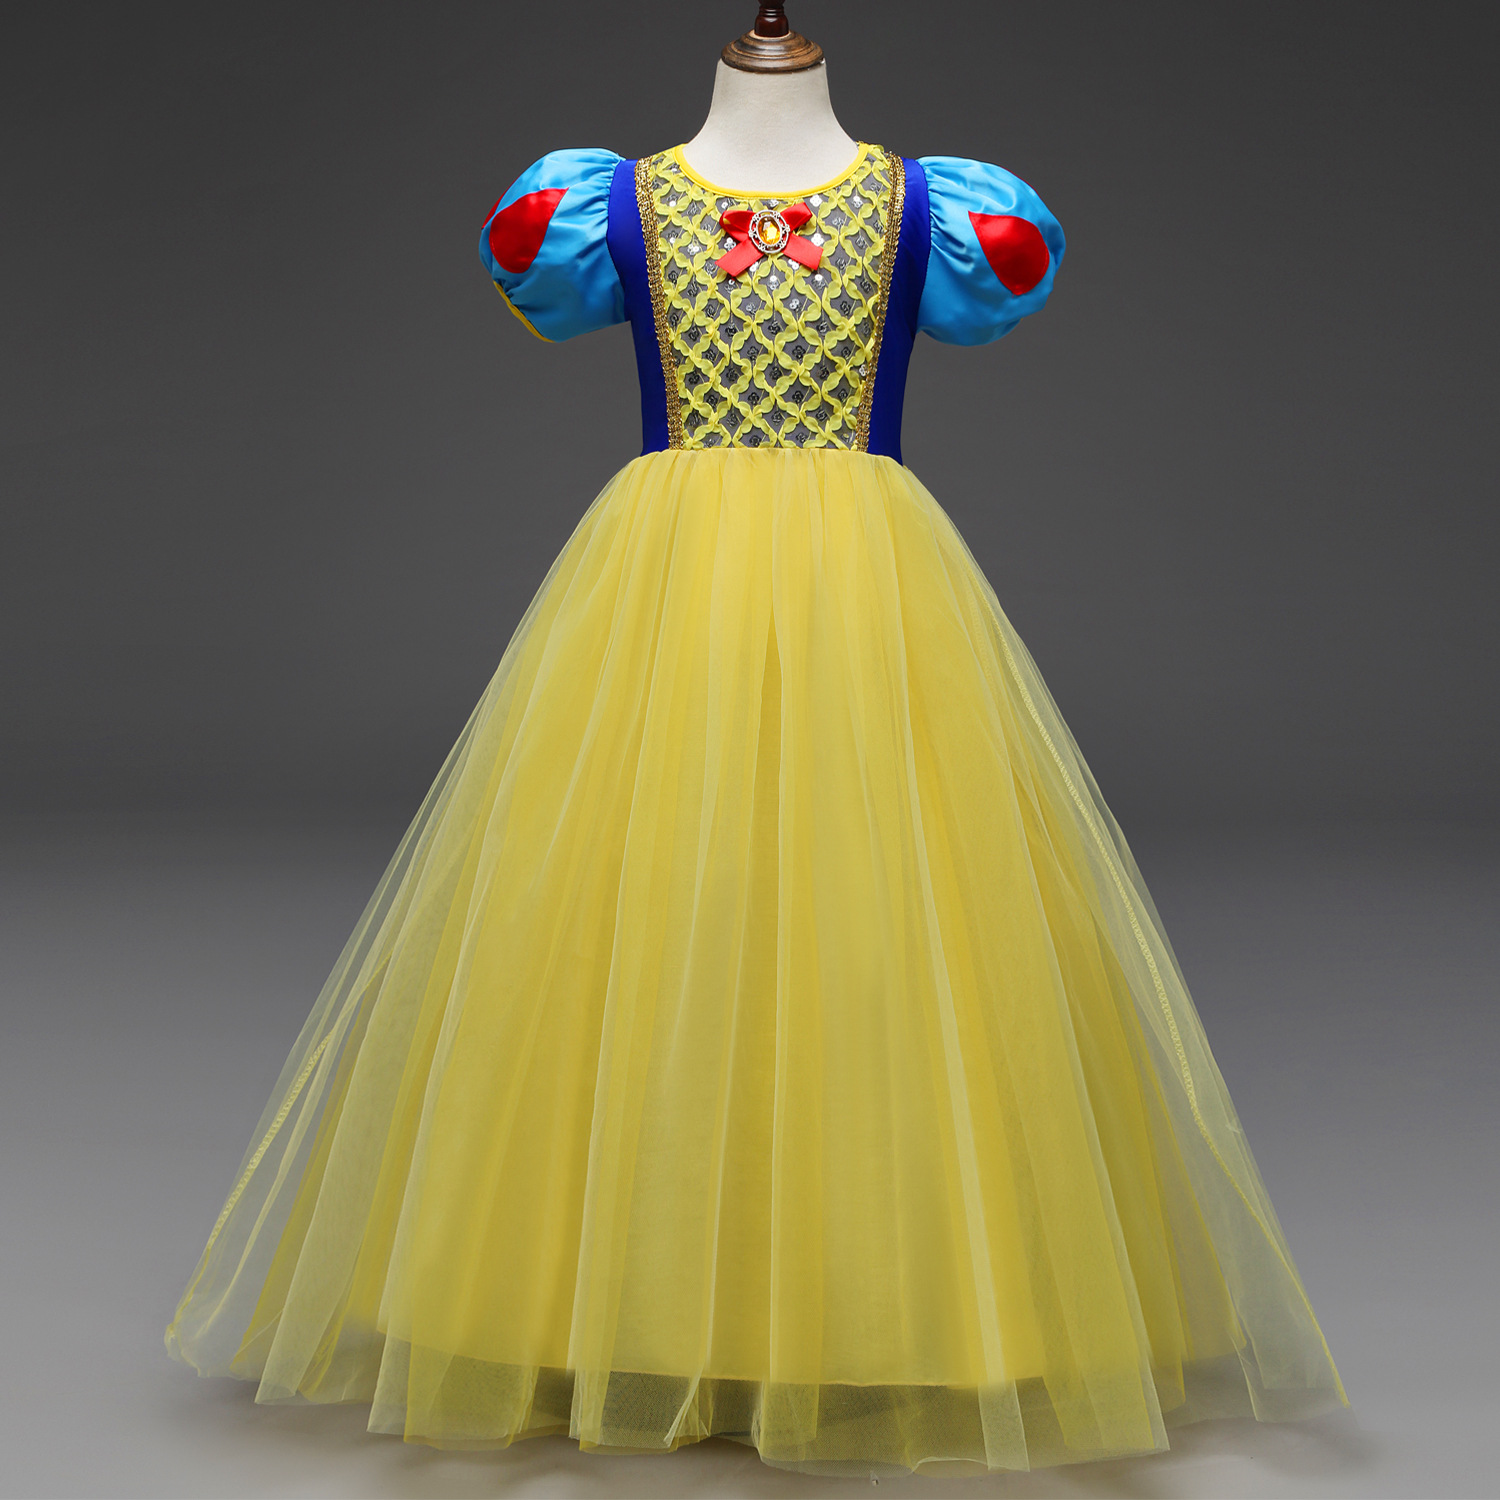 Snow White Princess Dress Kids Girls Dress Party Wear Costume for Children  Wedding Dress Formal Gown 10843c8548ba